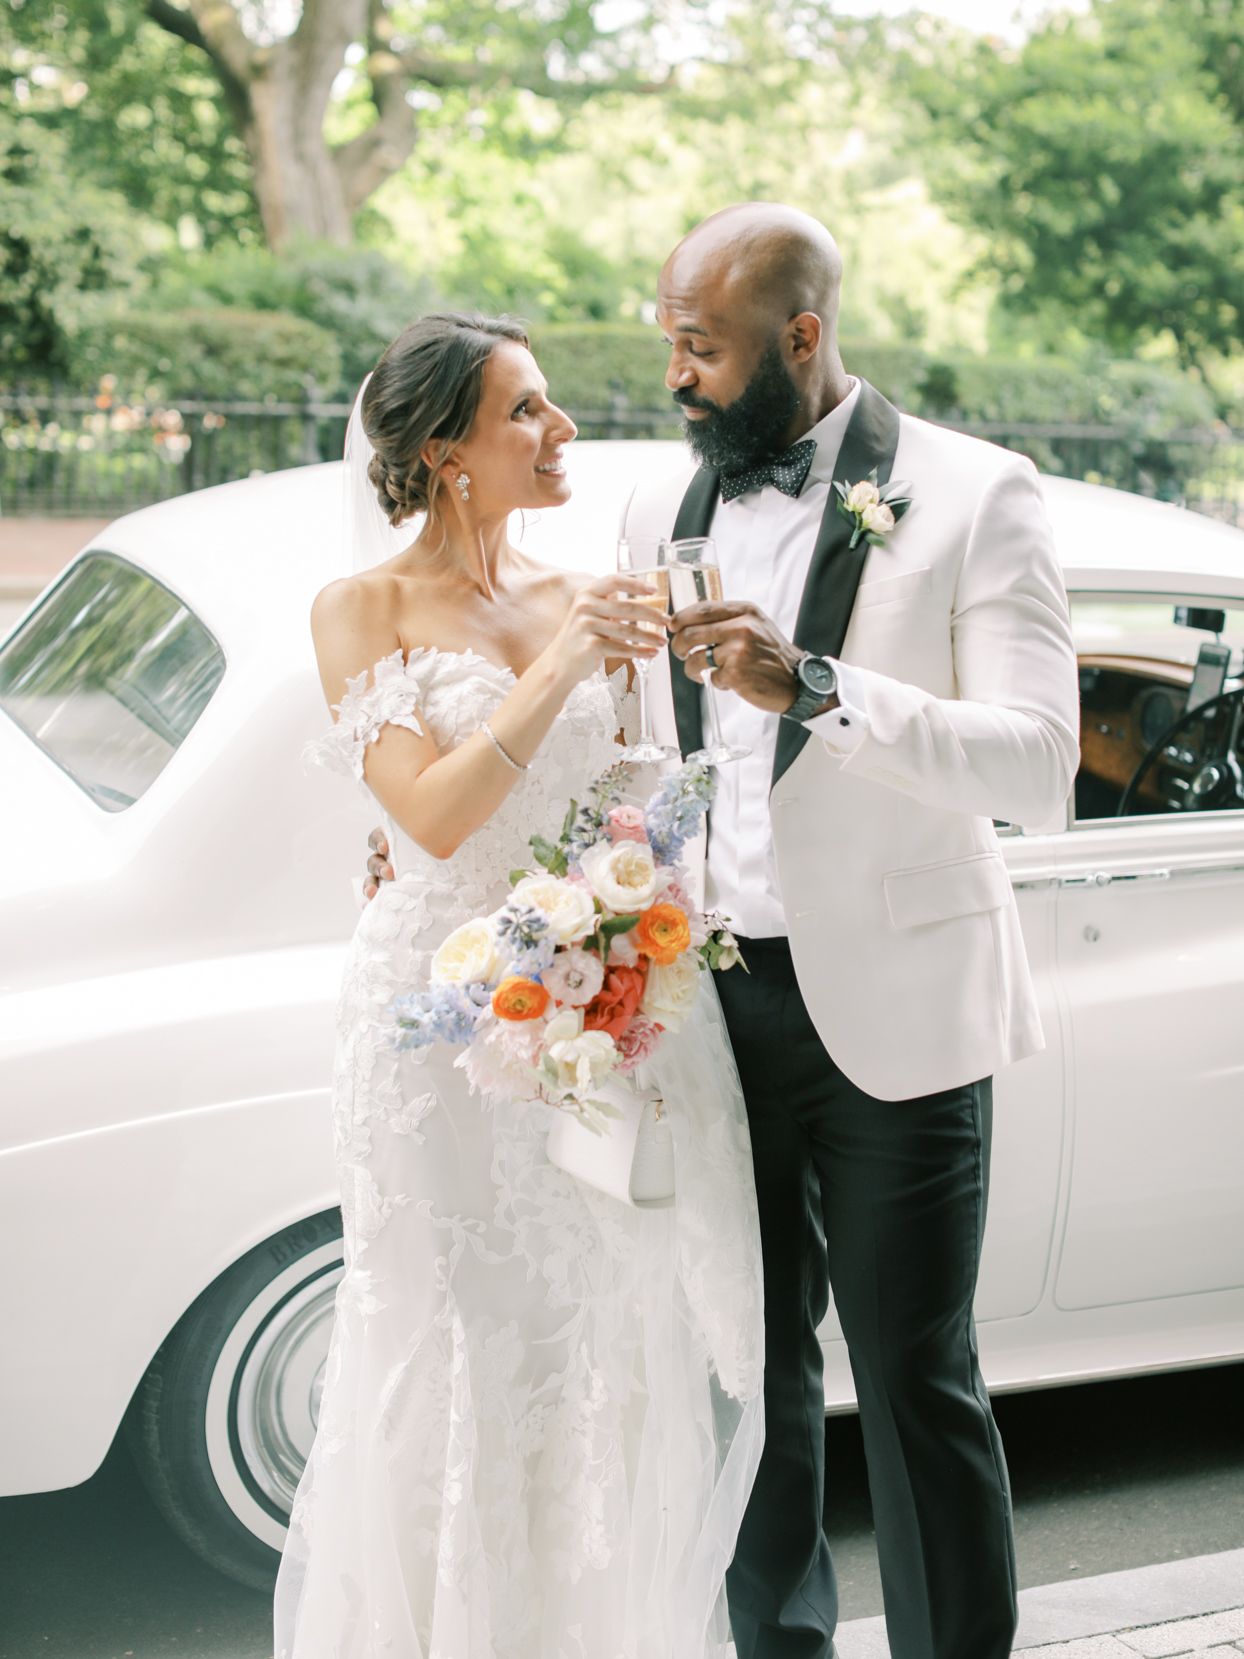 bride and groom toasting in front of car